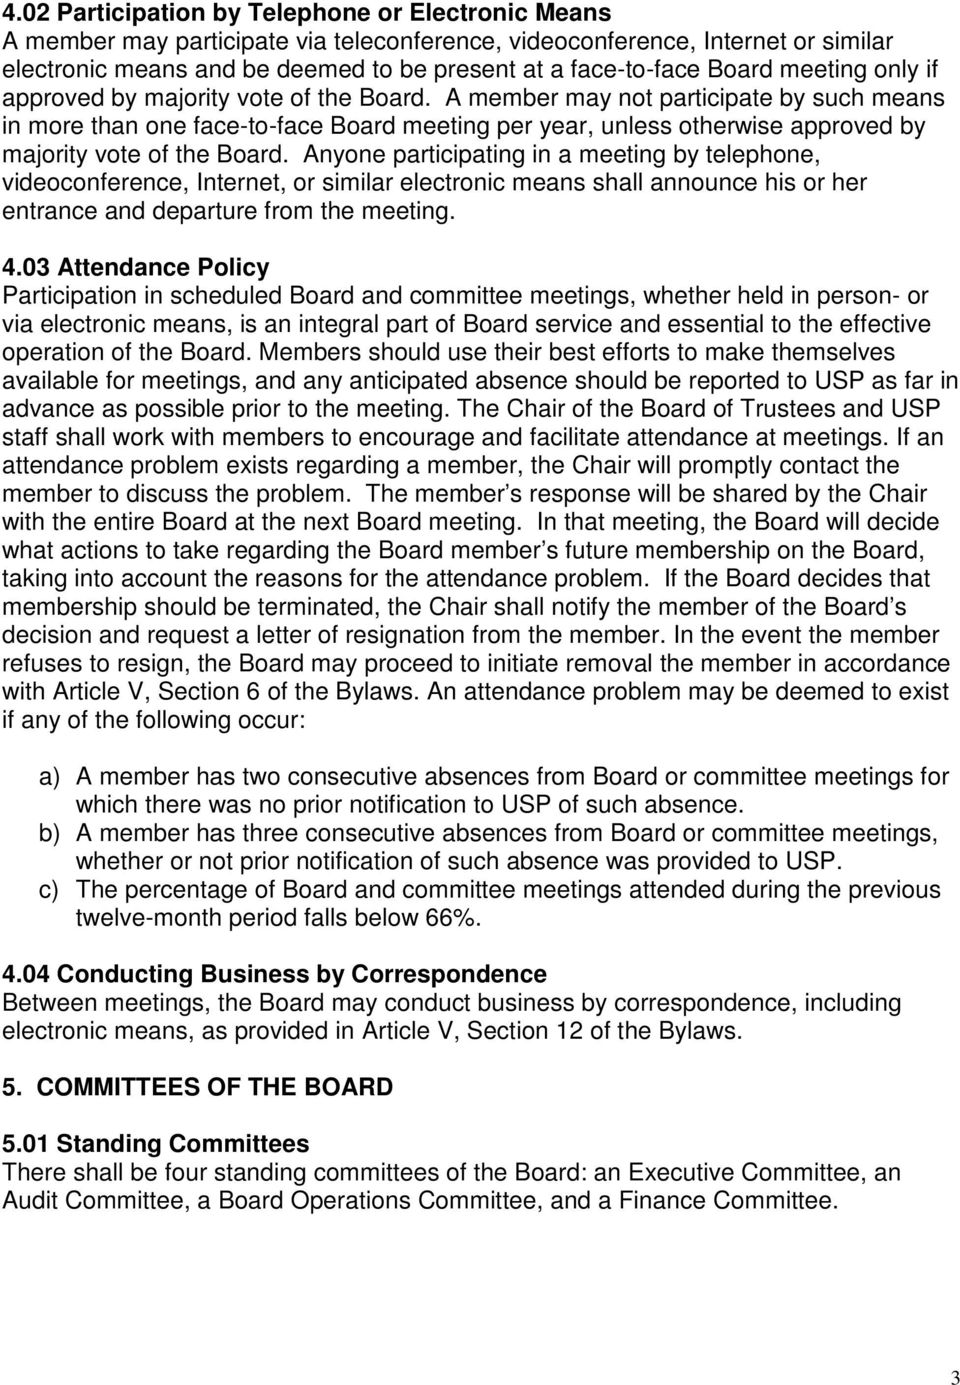 A member may not participate by such means in more than one face-to-face Board meeting per year, unless otherwise approved by majority vote of the Board.